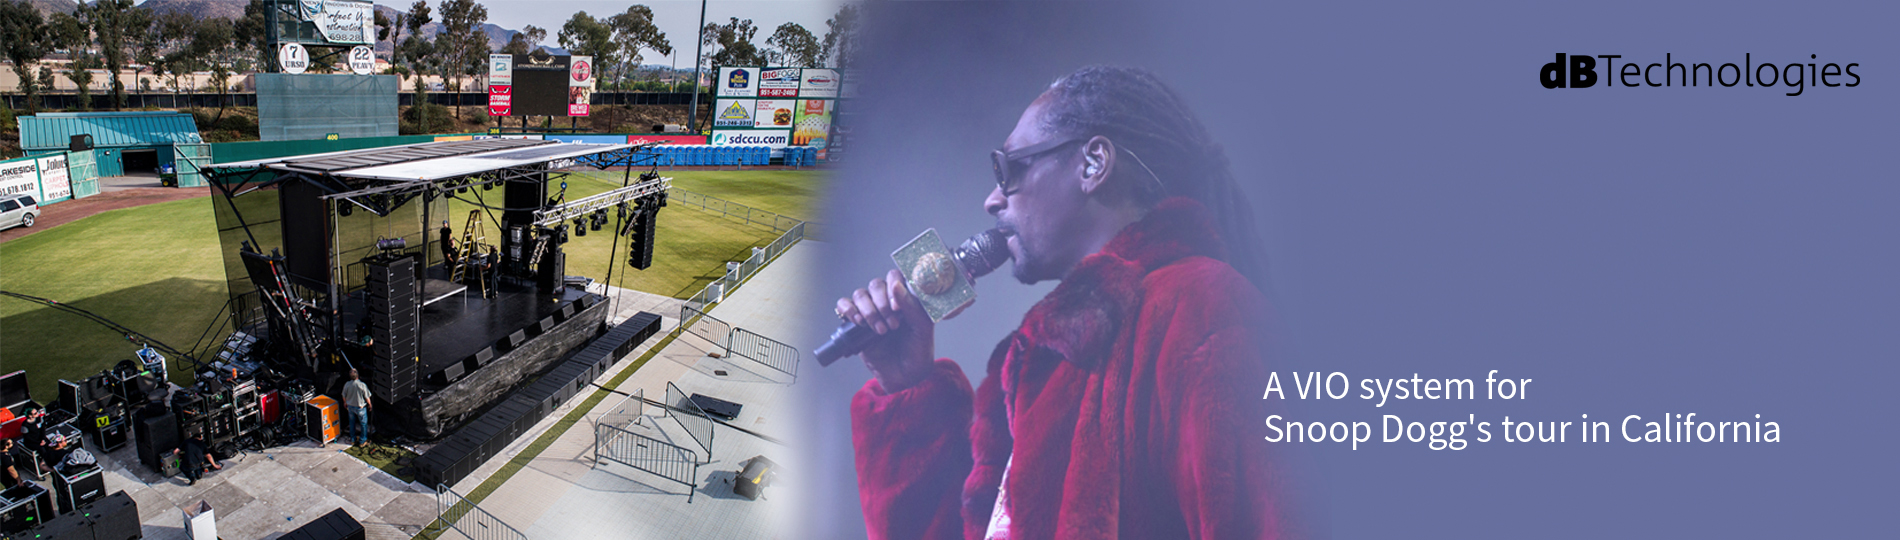 A VIO System for Snoop Dogg's Tour in California Live